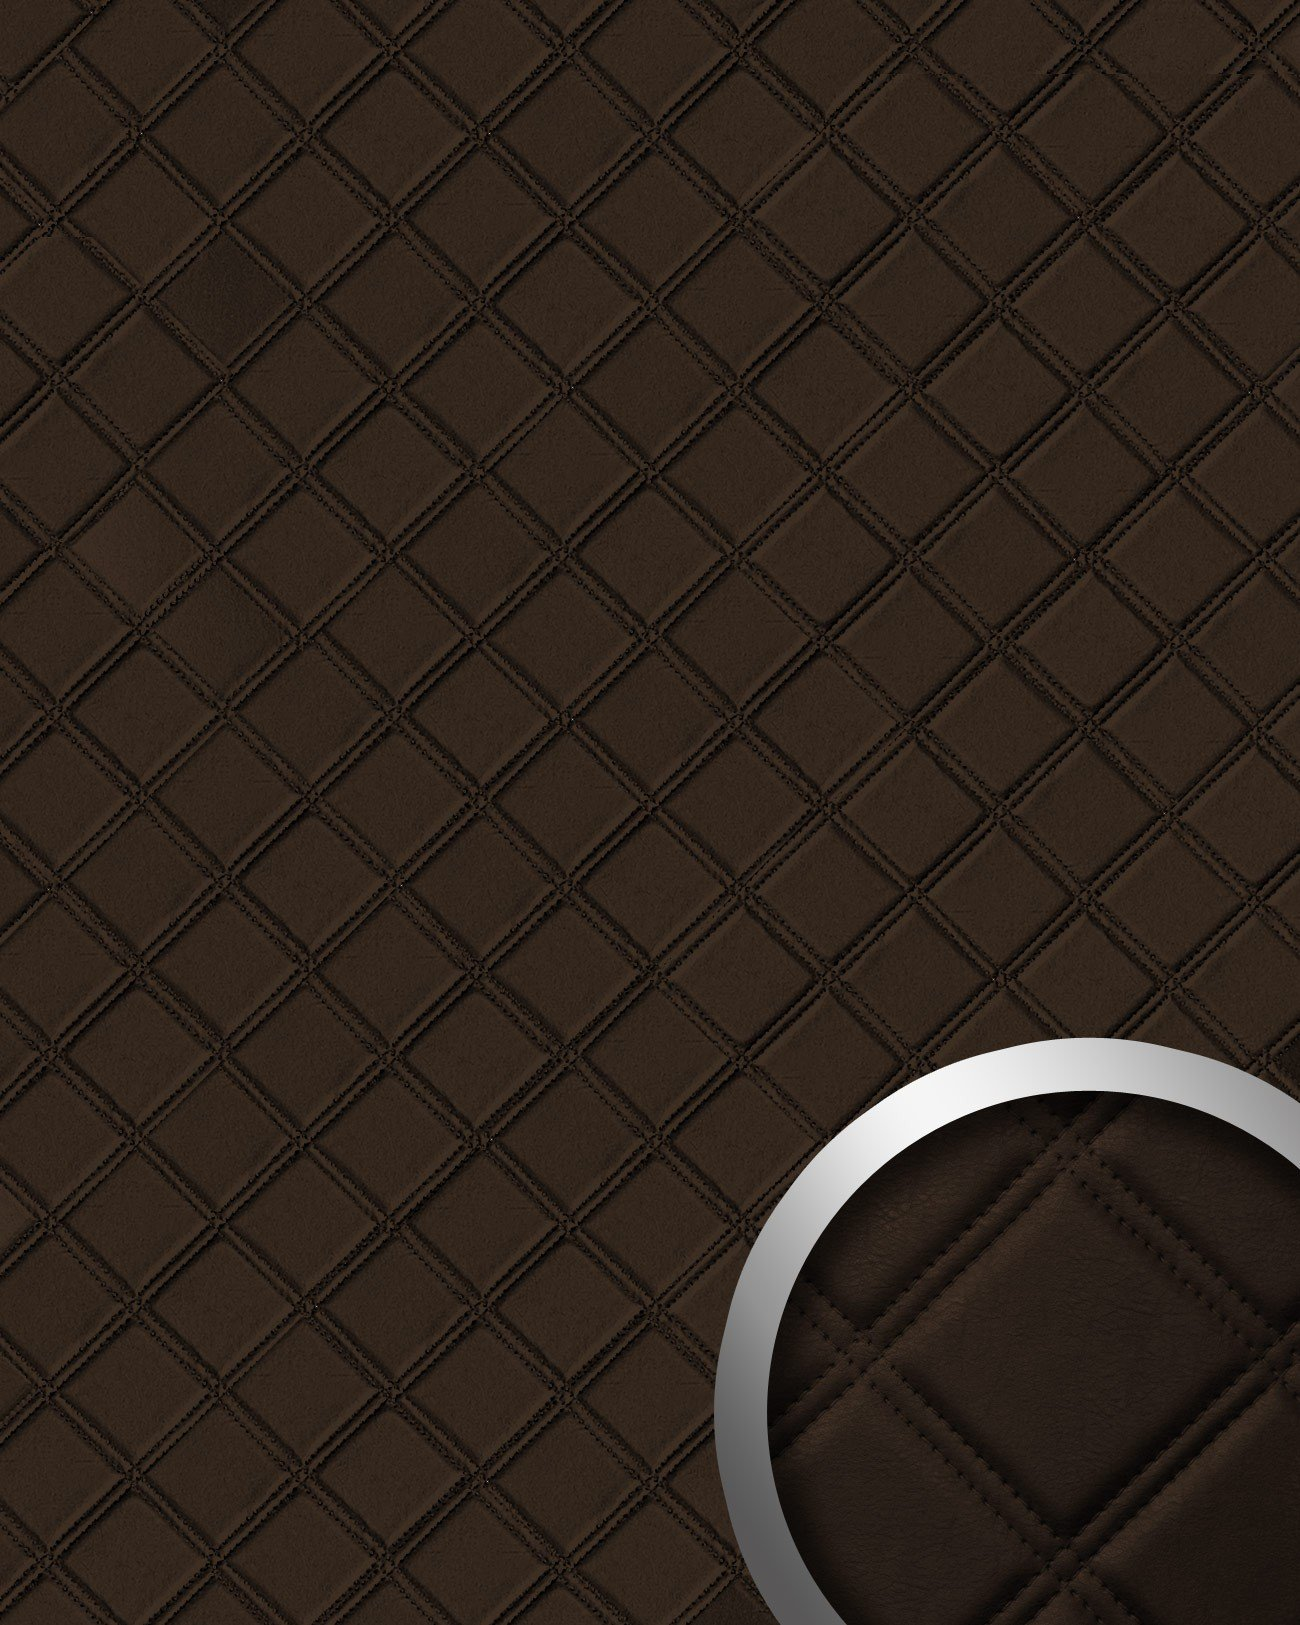 WallFace 15037 ROMBO Wall panel leather square 3D interior decor luxury wallcovering self-adhesive brown   2,60 sqm